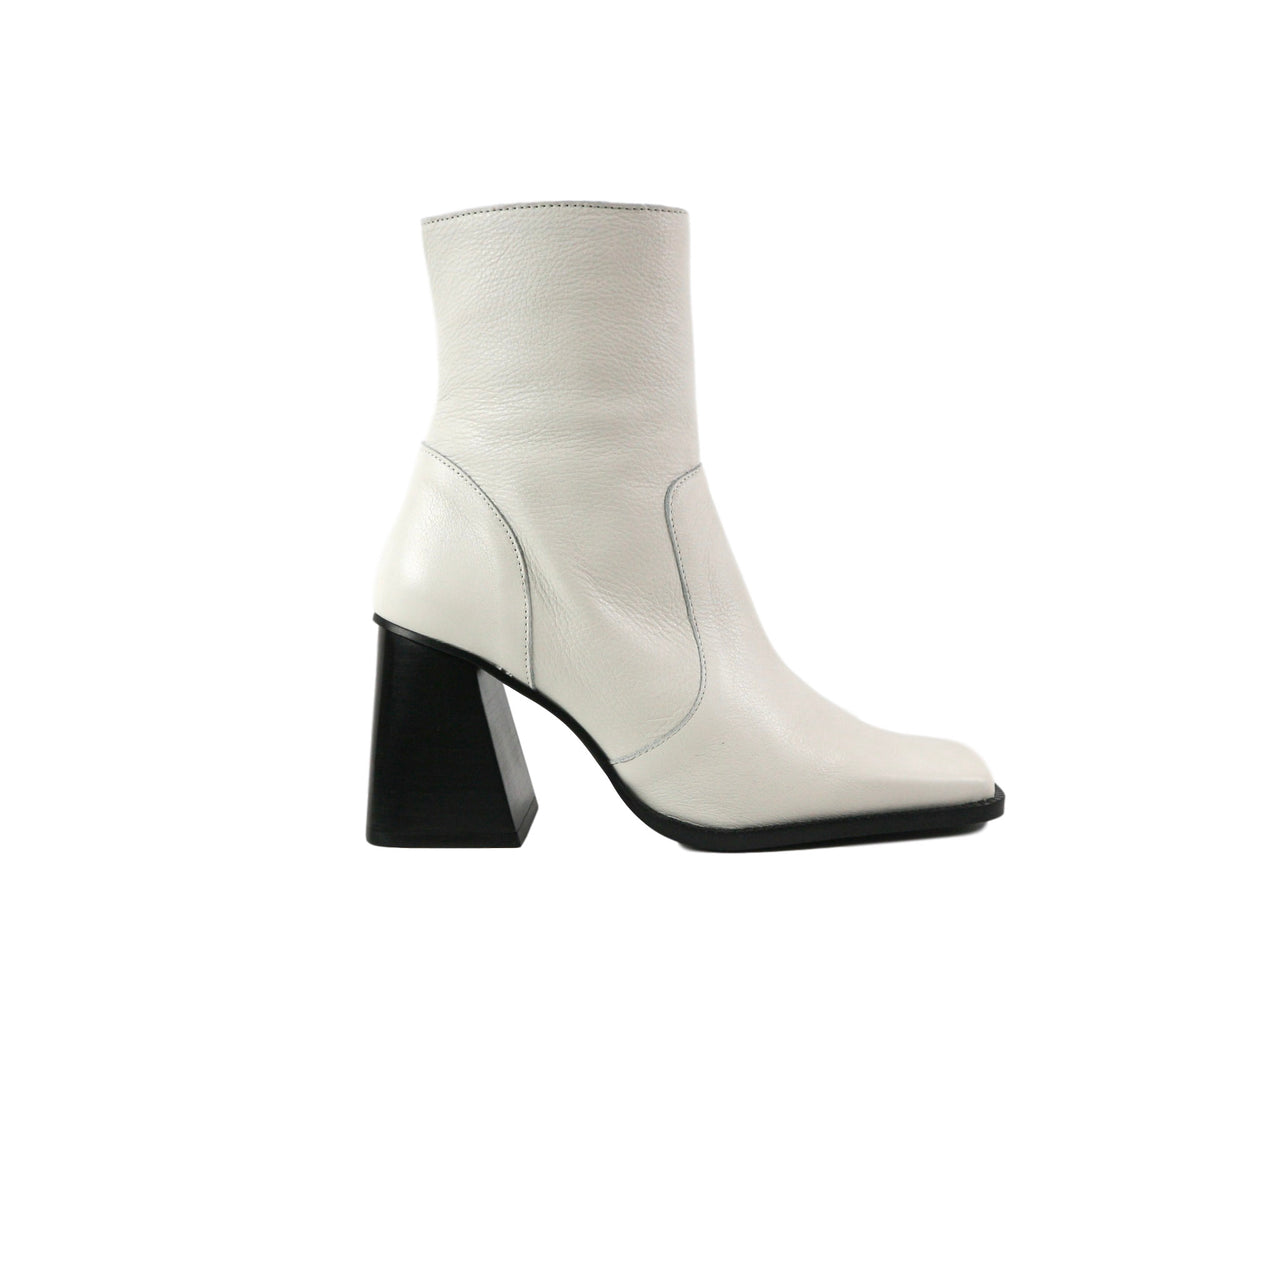 ISLA | MID HEEL WHITE BOOT - TrystShoes